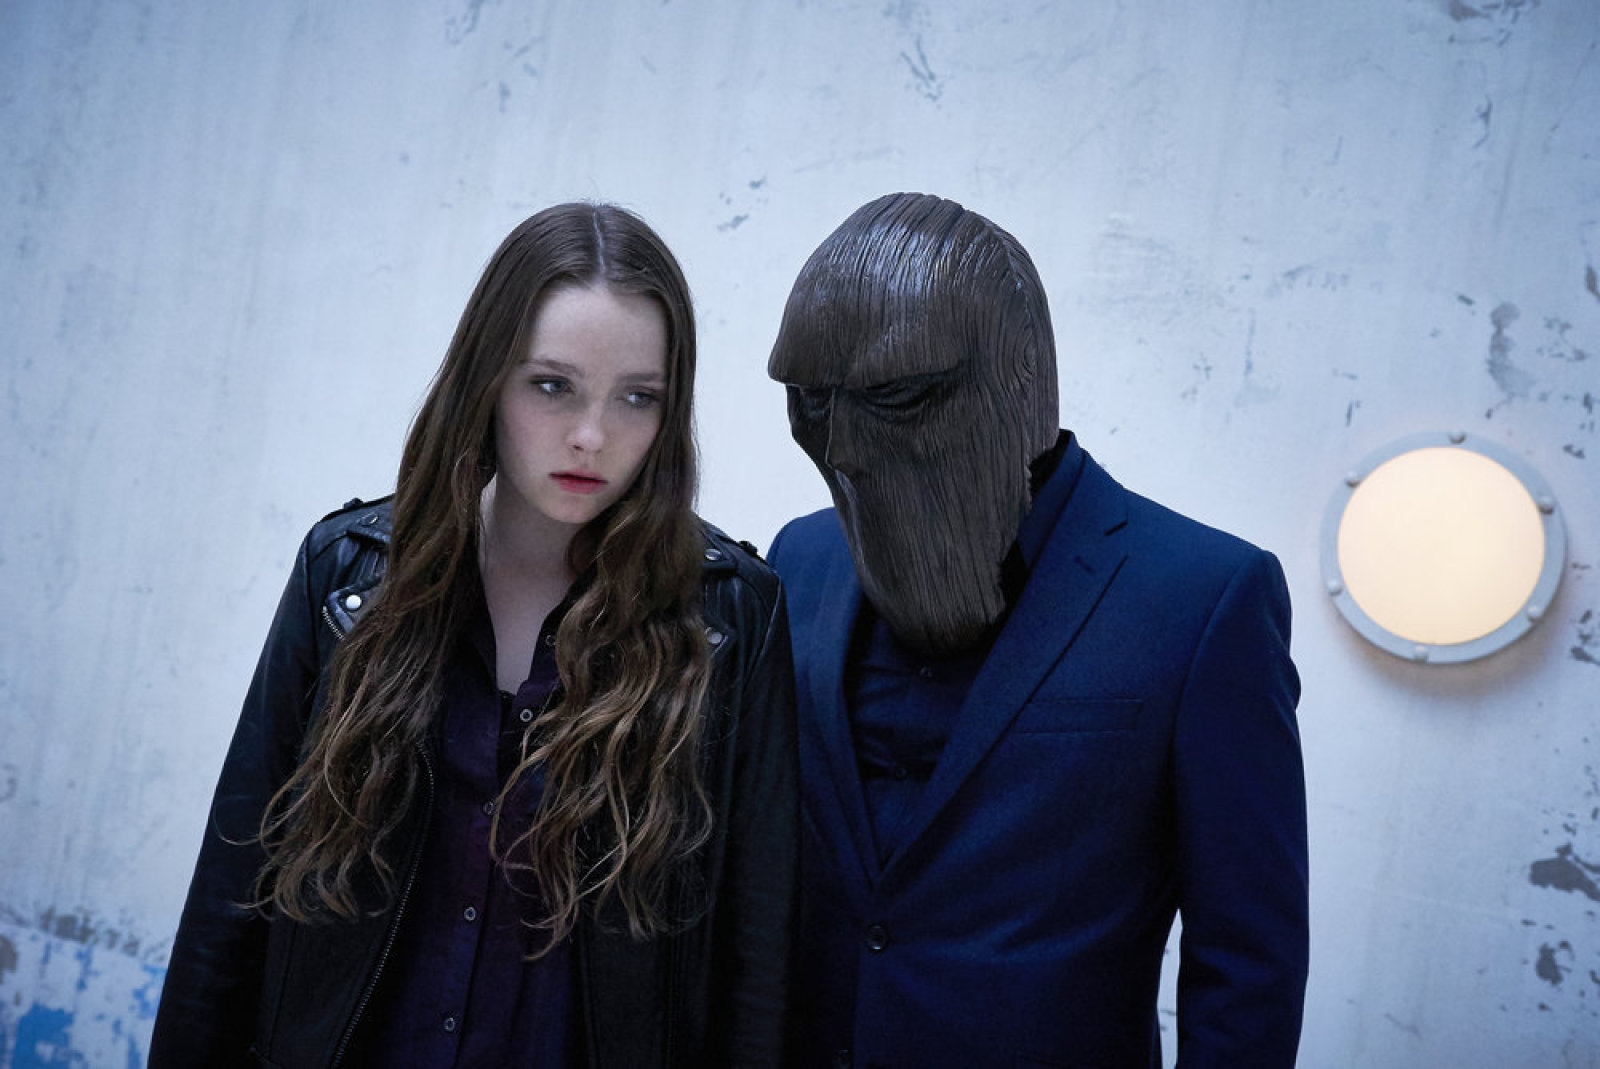 How 'Channel Zero' turns online 'creepypasta' tales into TV horror | DeviceDaily.com